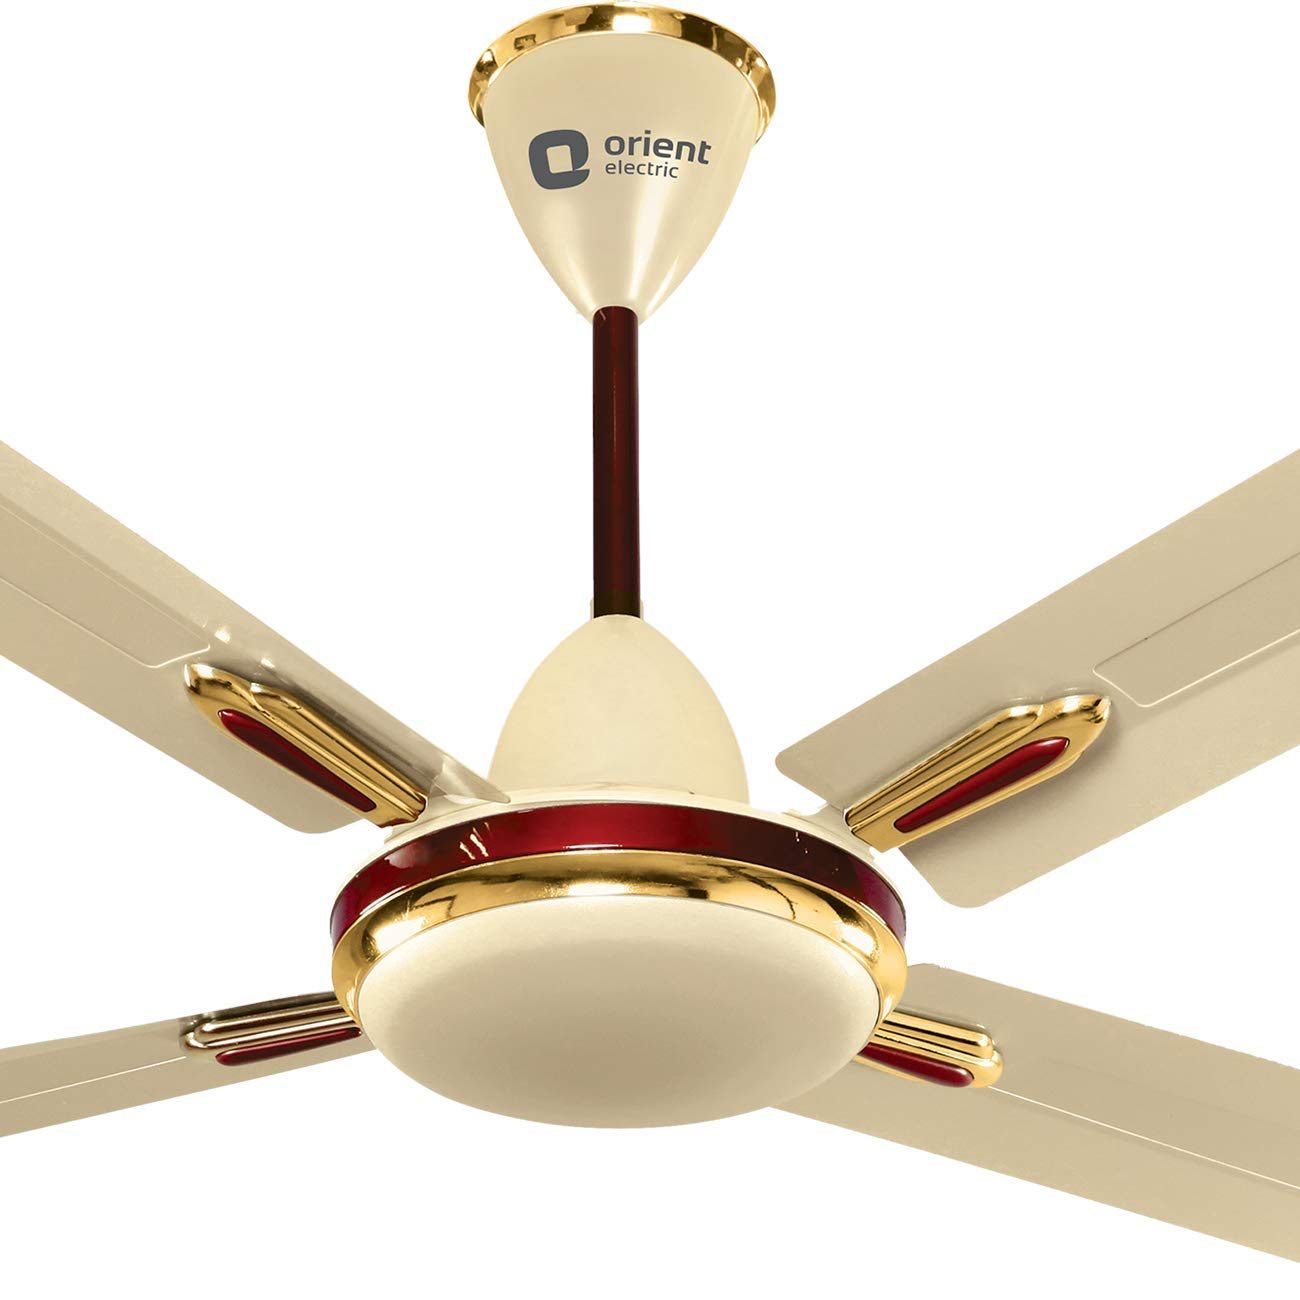 Buy Orient Electric Quadro Ornamental 1200mm Ceiling Fan Metallic Ivory Cherry Online At Low Prices In India Amazon In